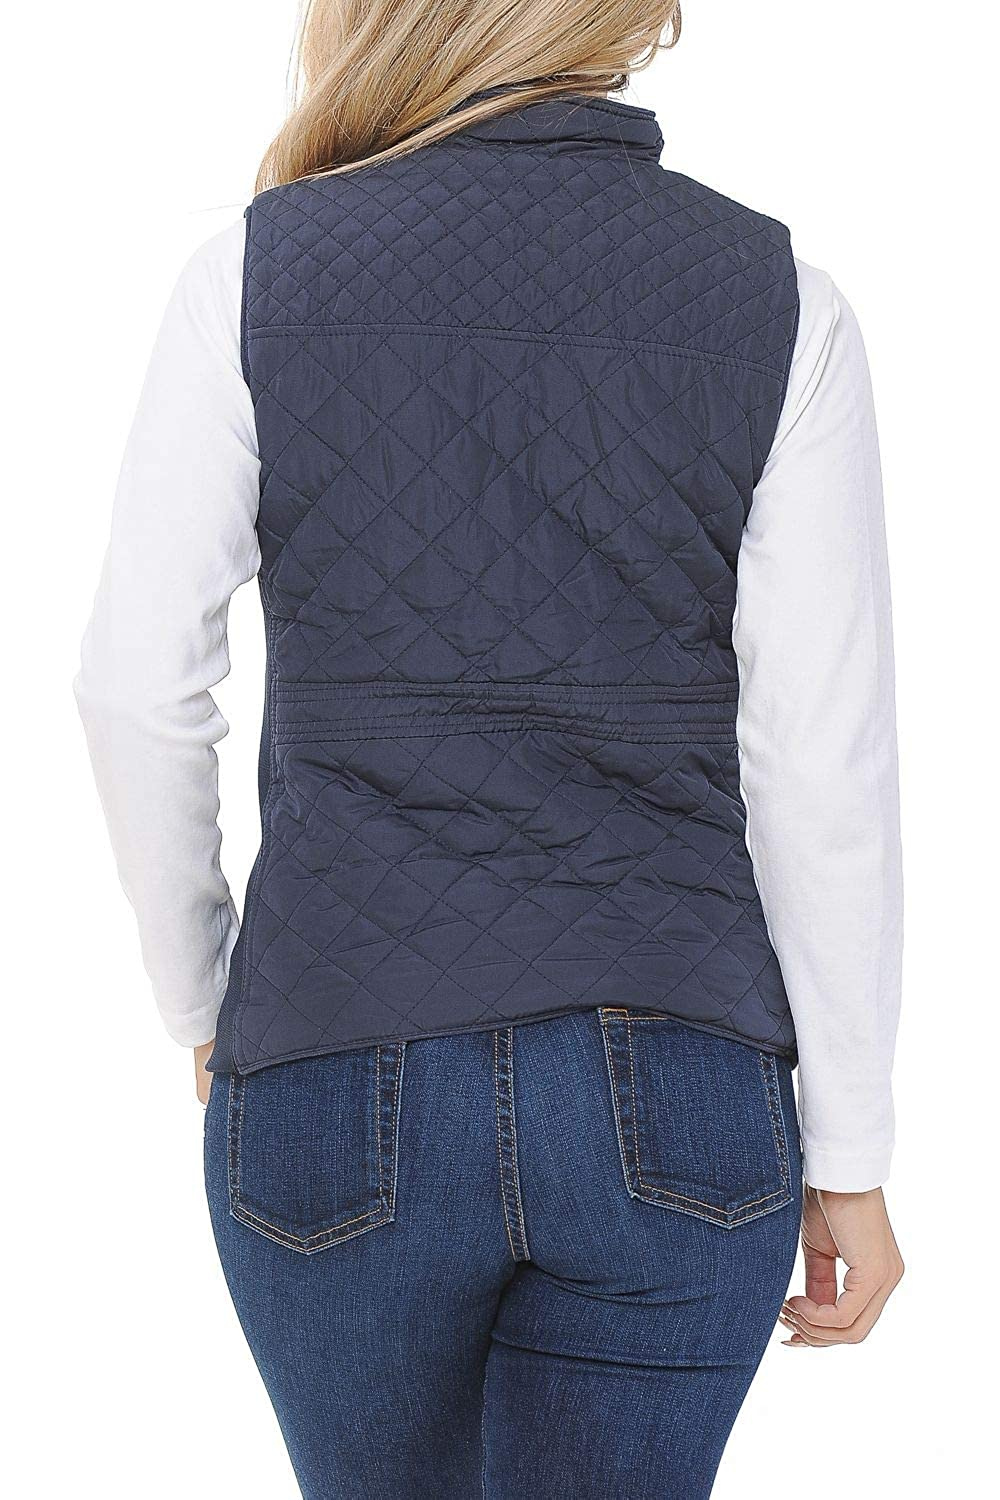 Aulin/é Collection Womens Quilted Zip Up Lightweight Padding Vest